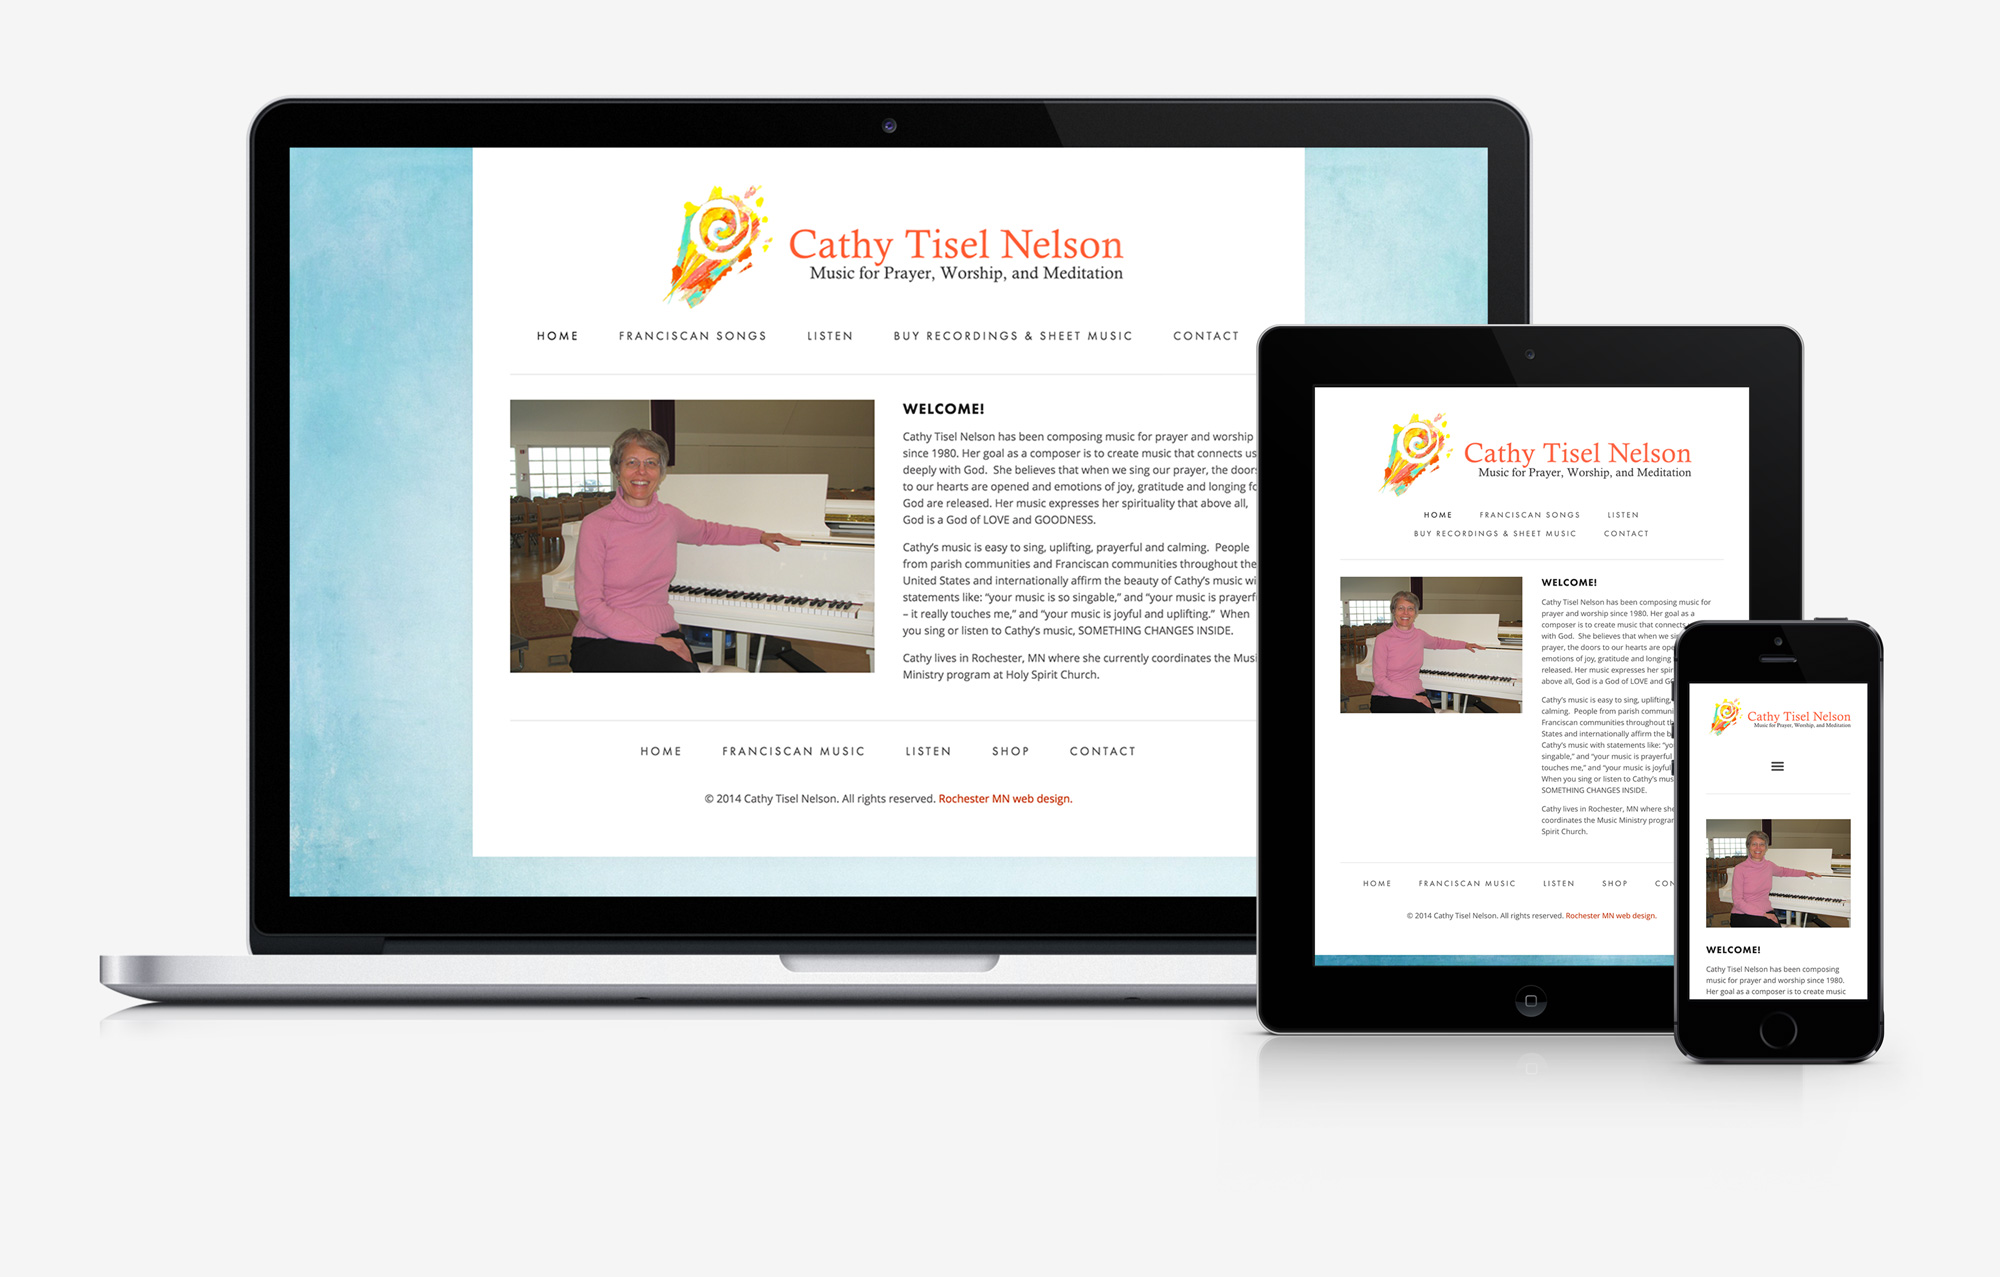 Cathy Tisel Nelson Music responsive website design by PixelPress